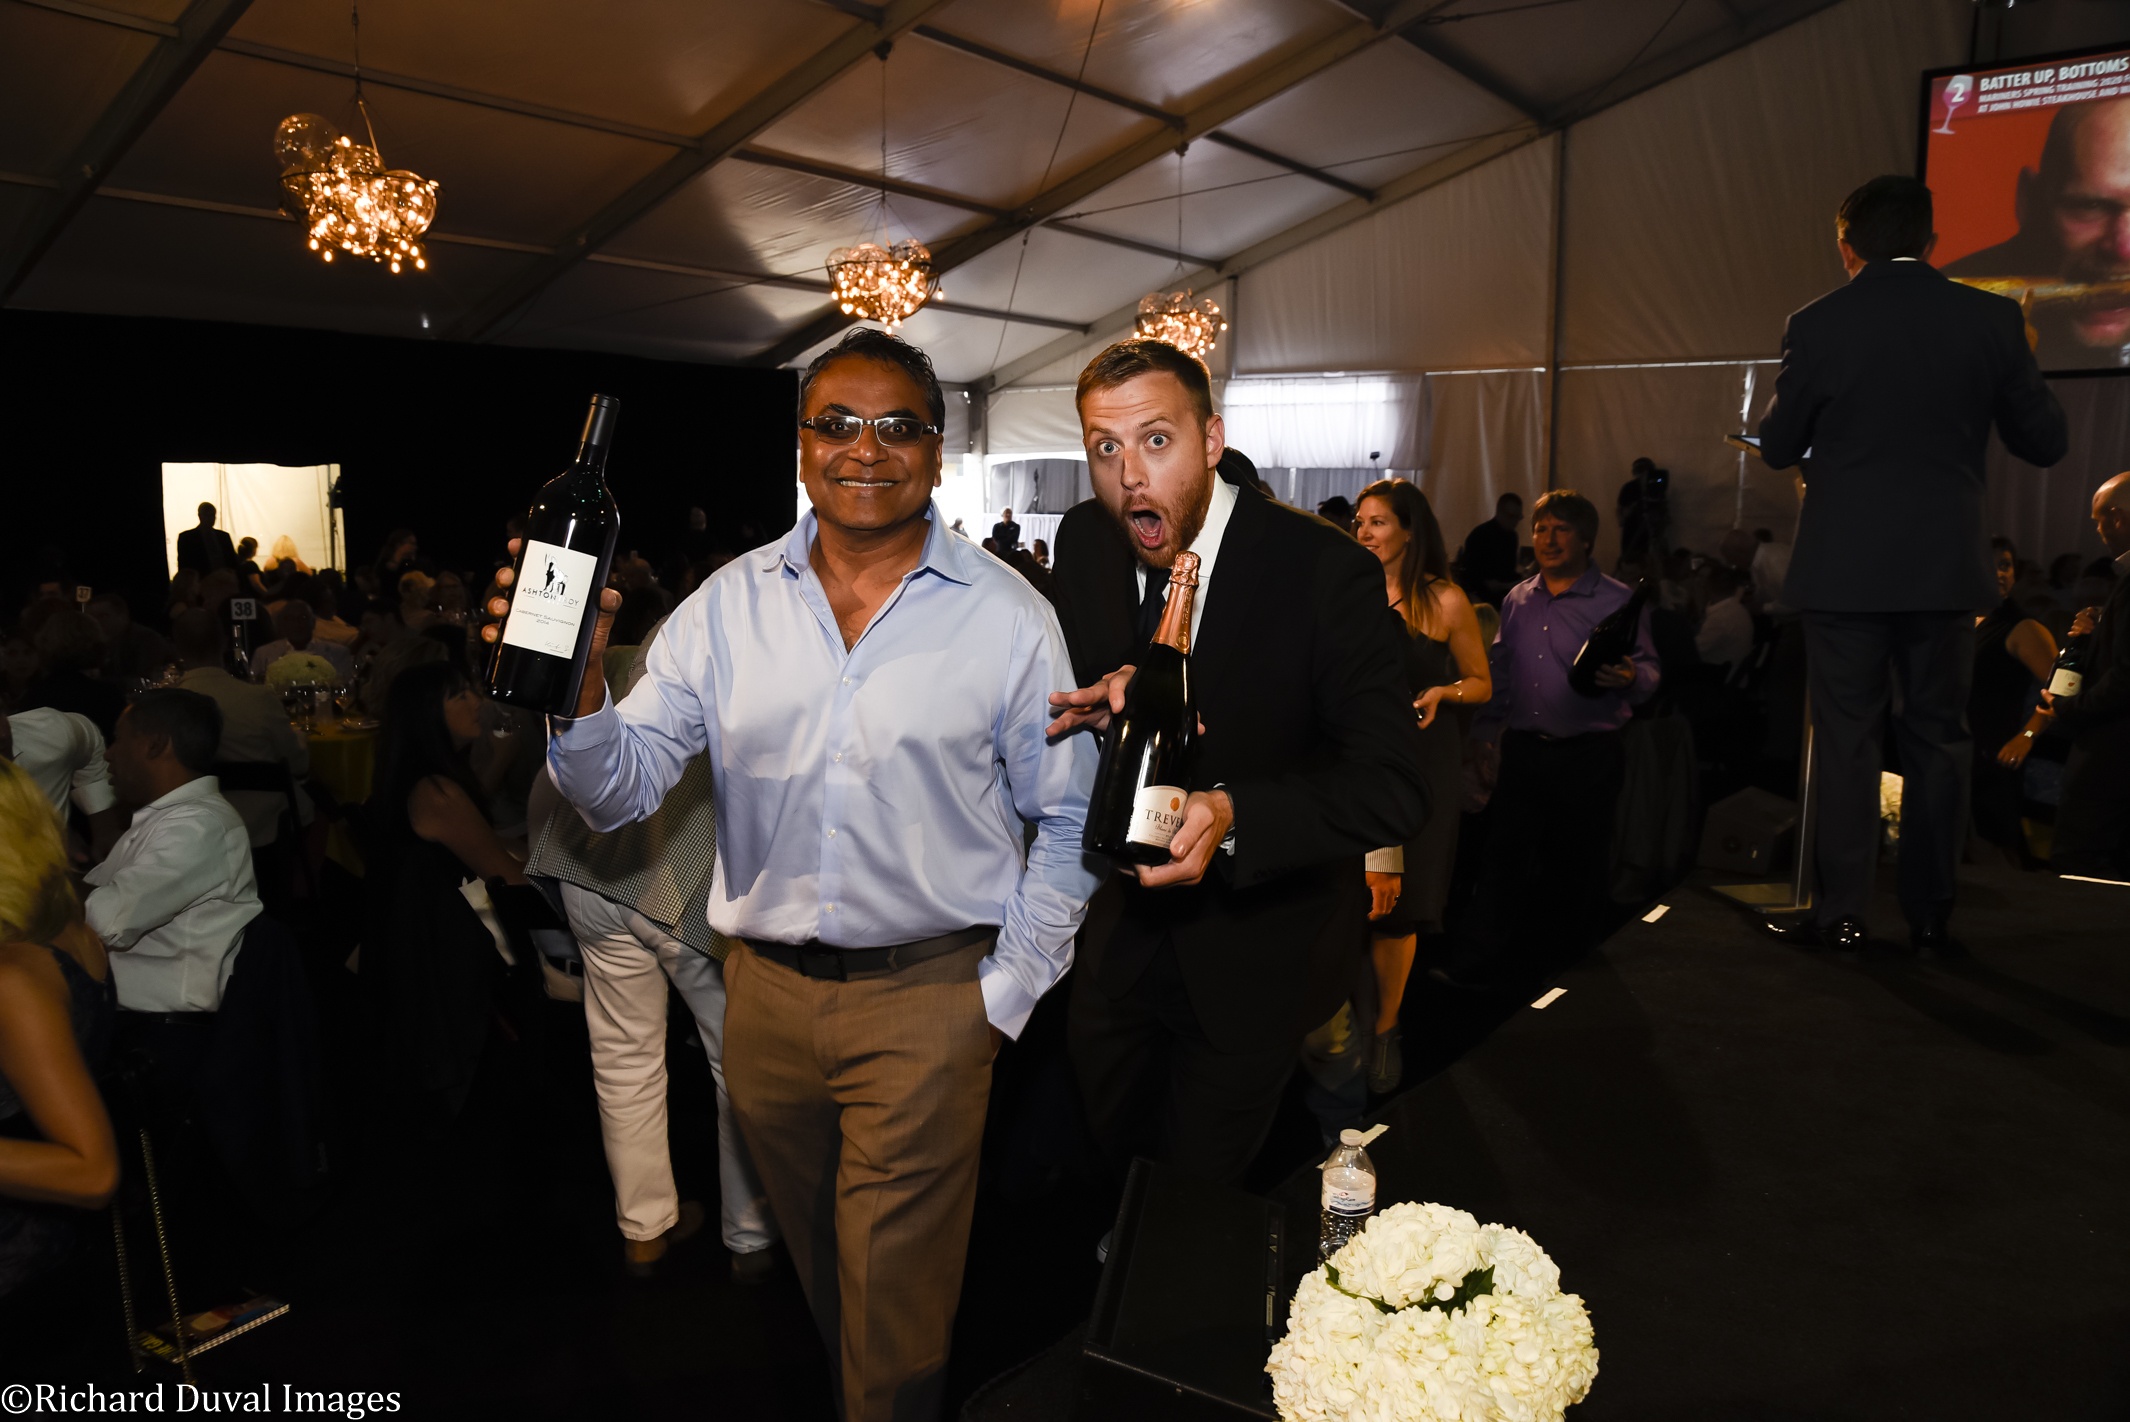 A man in a blue button-up shirt and sunglasses holds a bottle of wine and smiles next to another man in a black suit with a faux-surprised expression. They are in a dark room with people all around them.